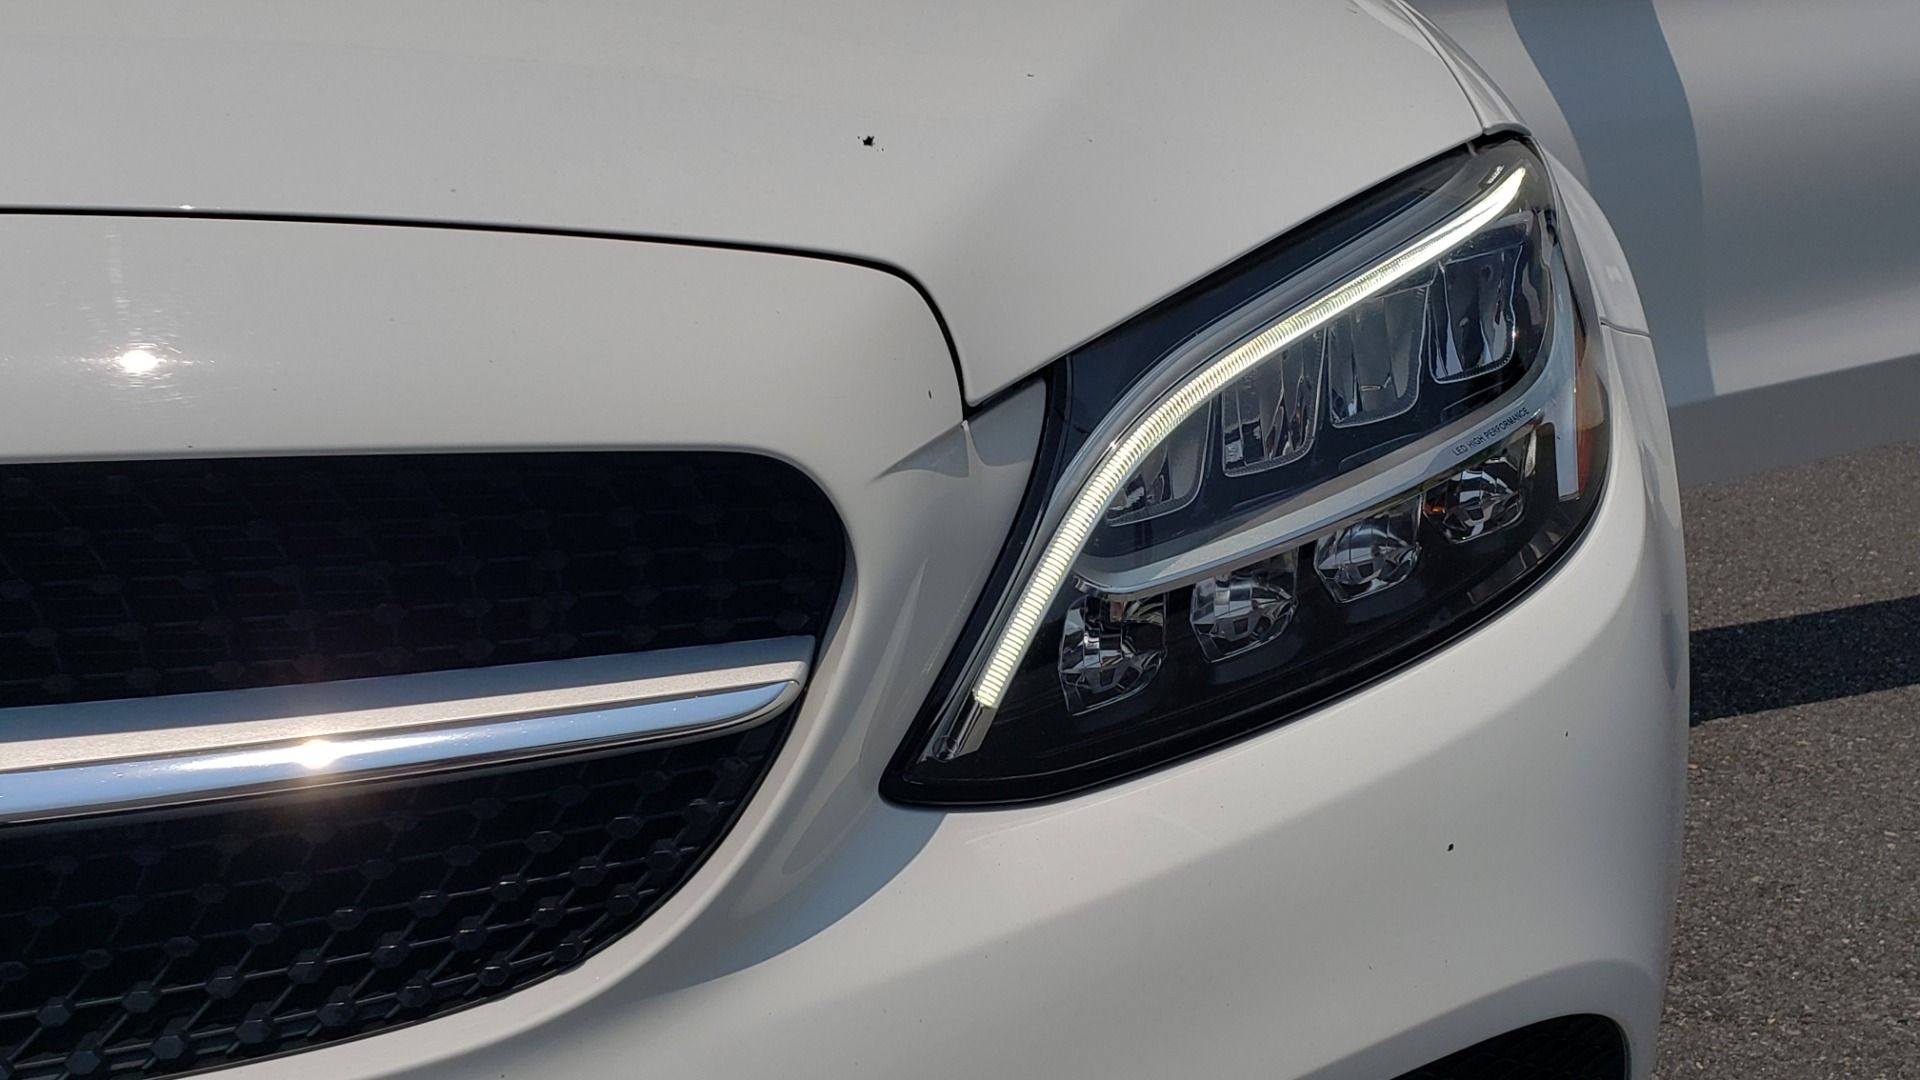 Used 2019 Mercedes-Benz C-CLASS C 300 CABRIOLET 2.0L / AUTO / NAV / HD RADIO / REARVIEW for sale $46,995 at Formula Imports in Charlotte NC 28227 26